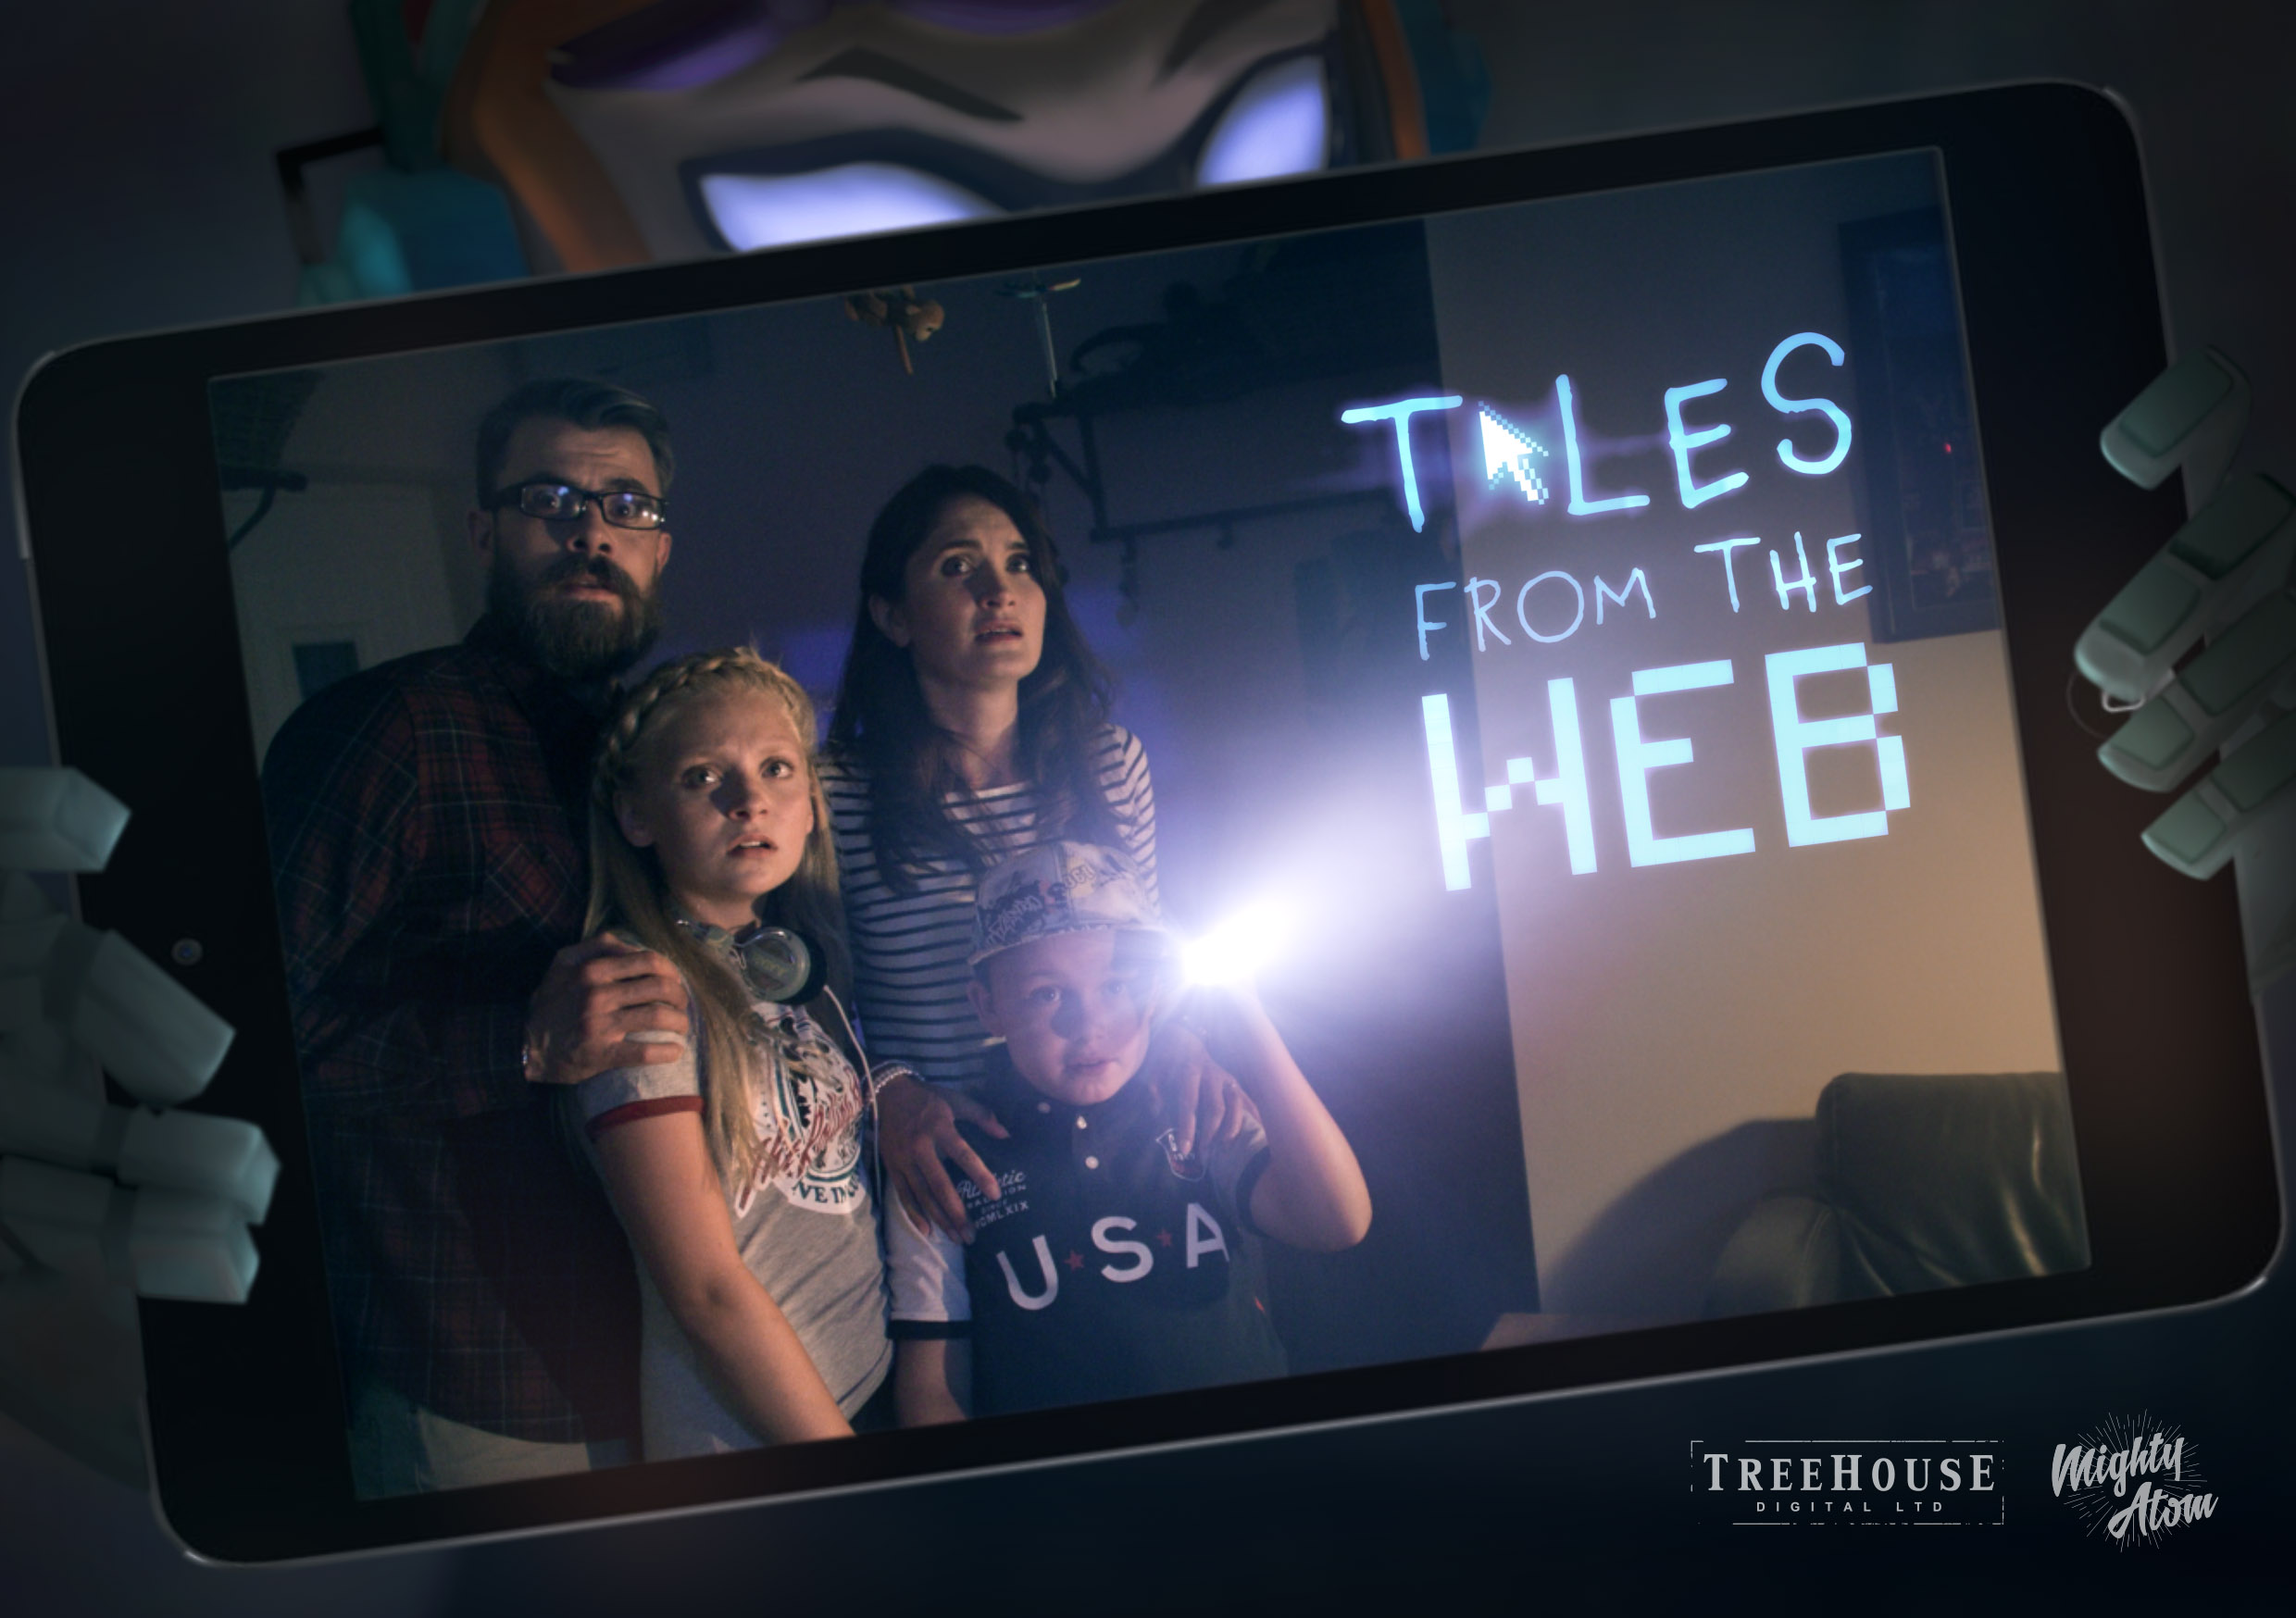 Tales from the web